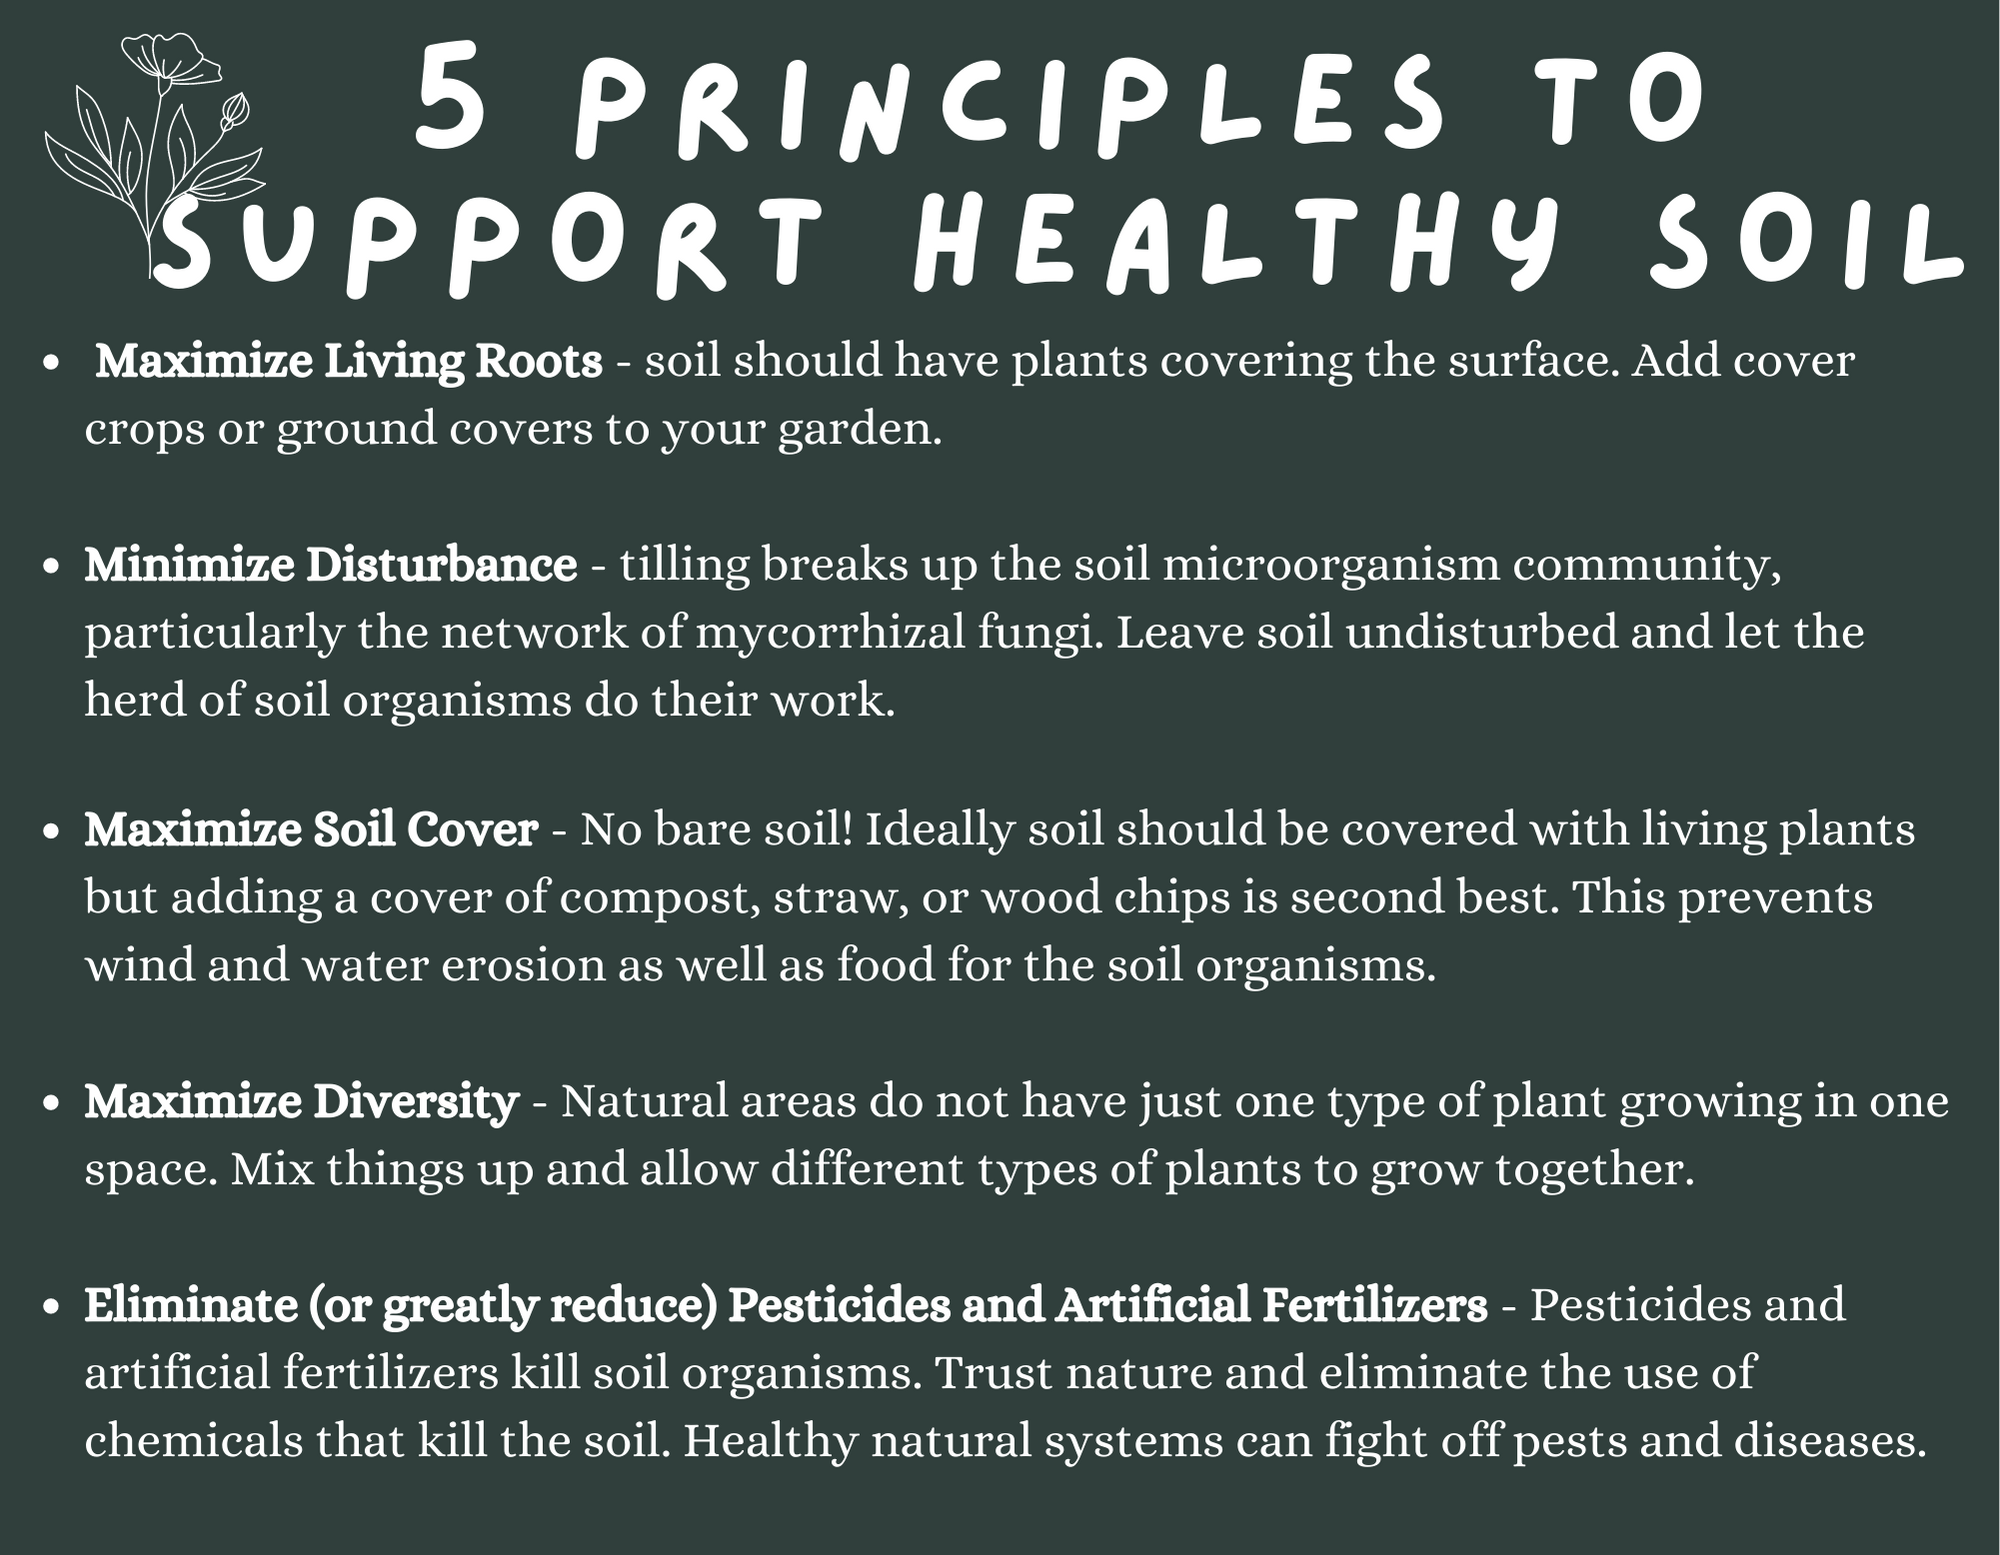 5 principles to support healthy soil